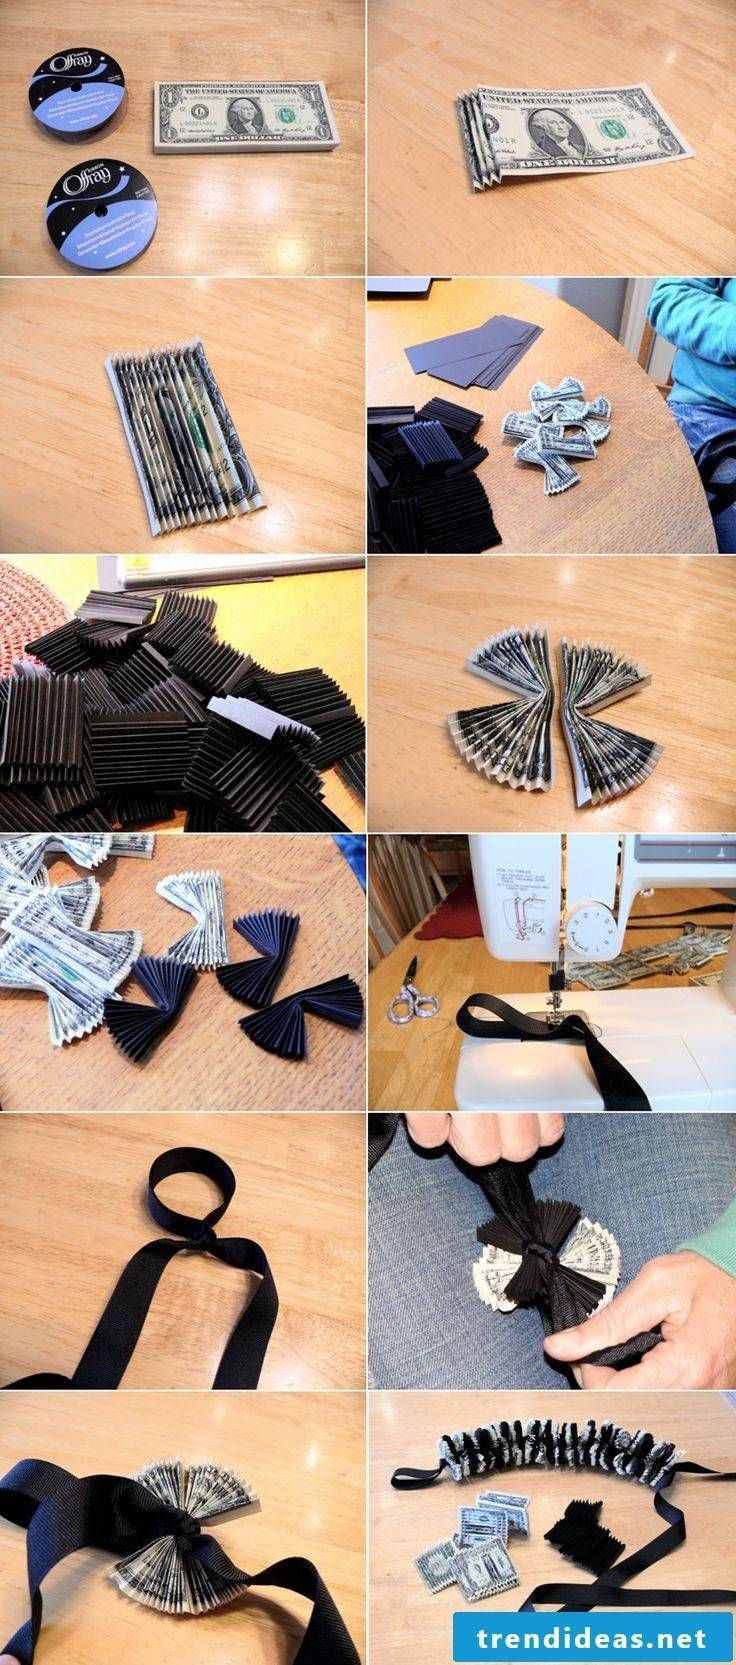 Folding banknotes Make heart and chain out of money yourself